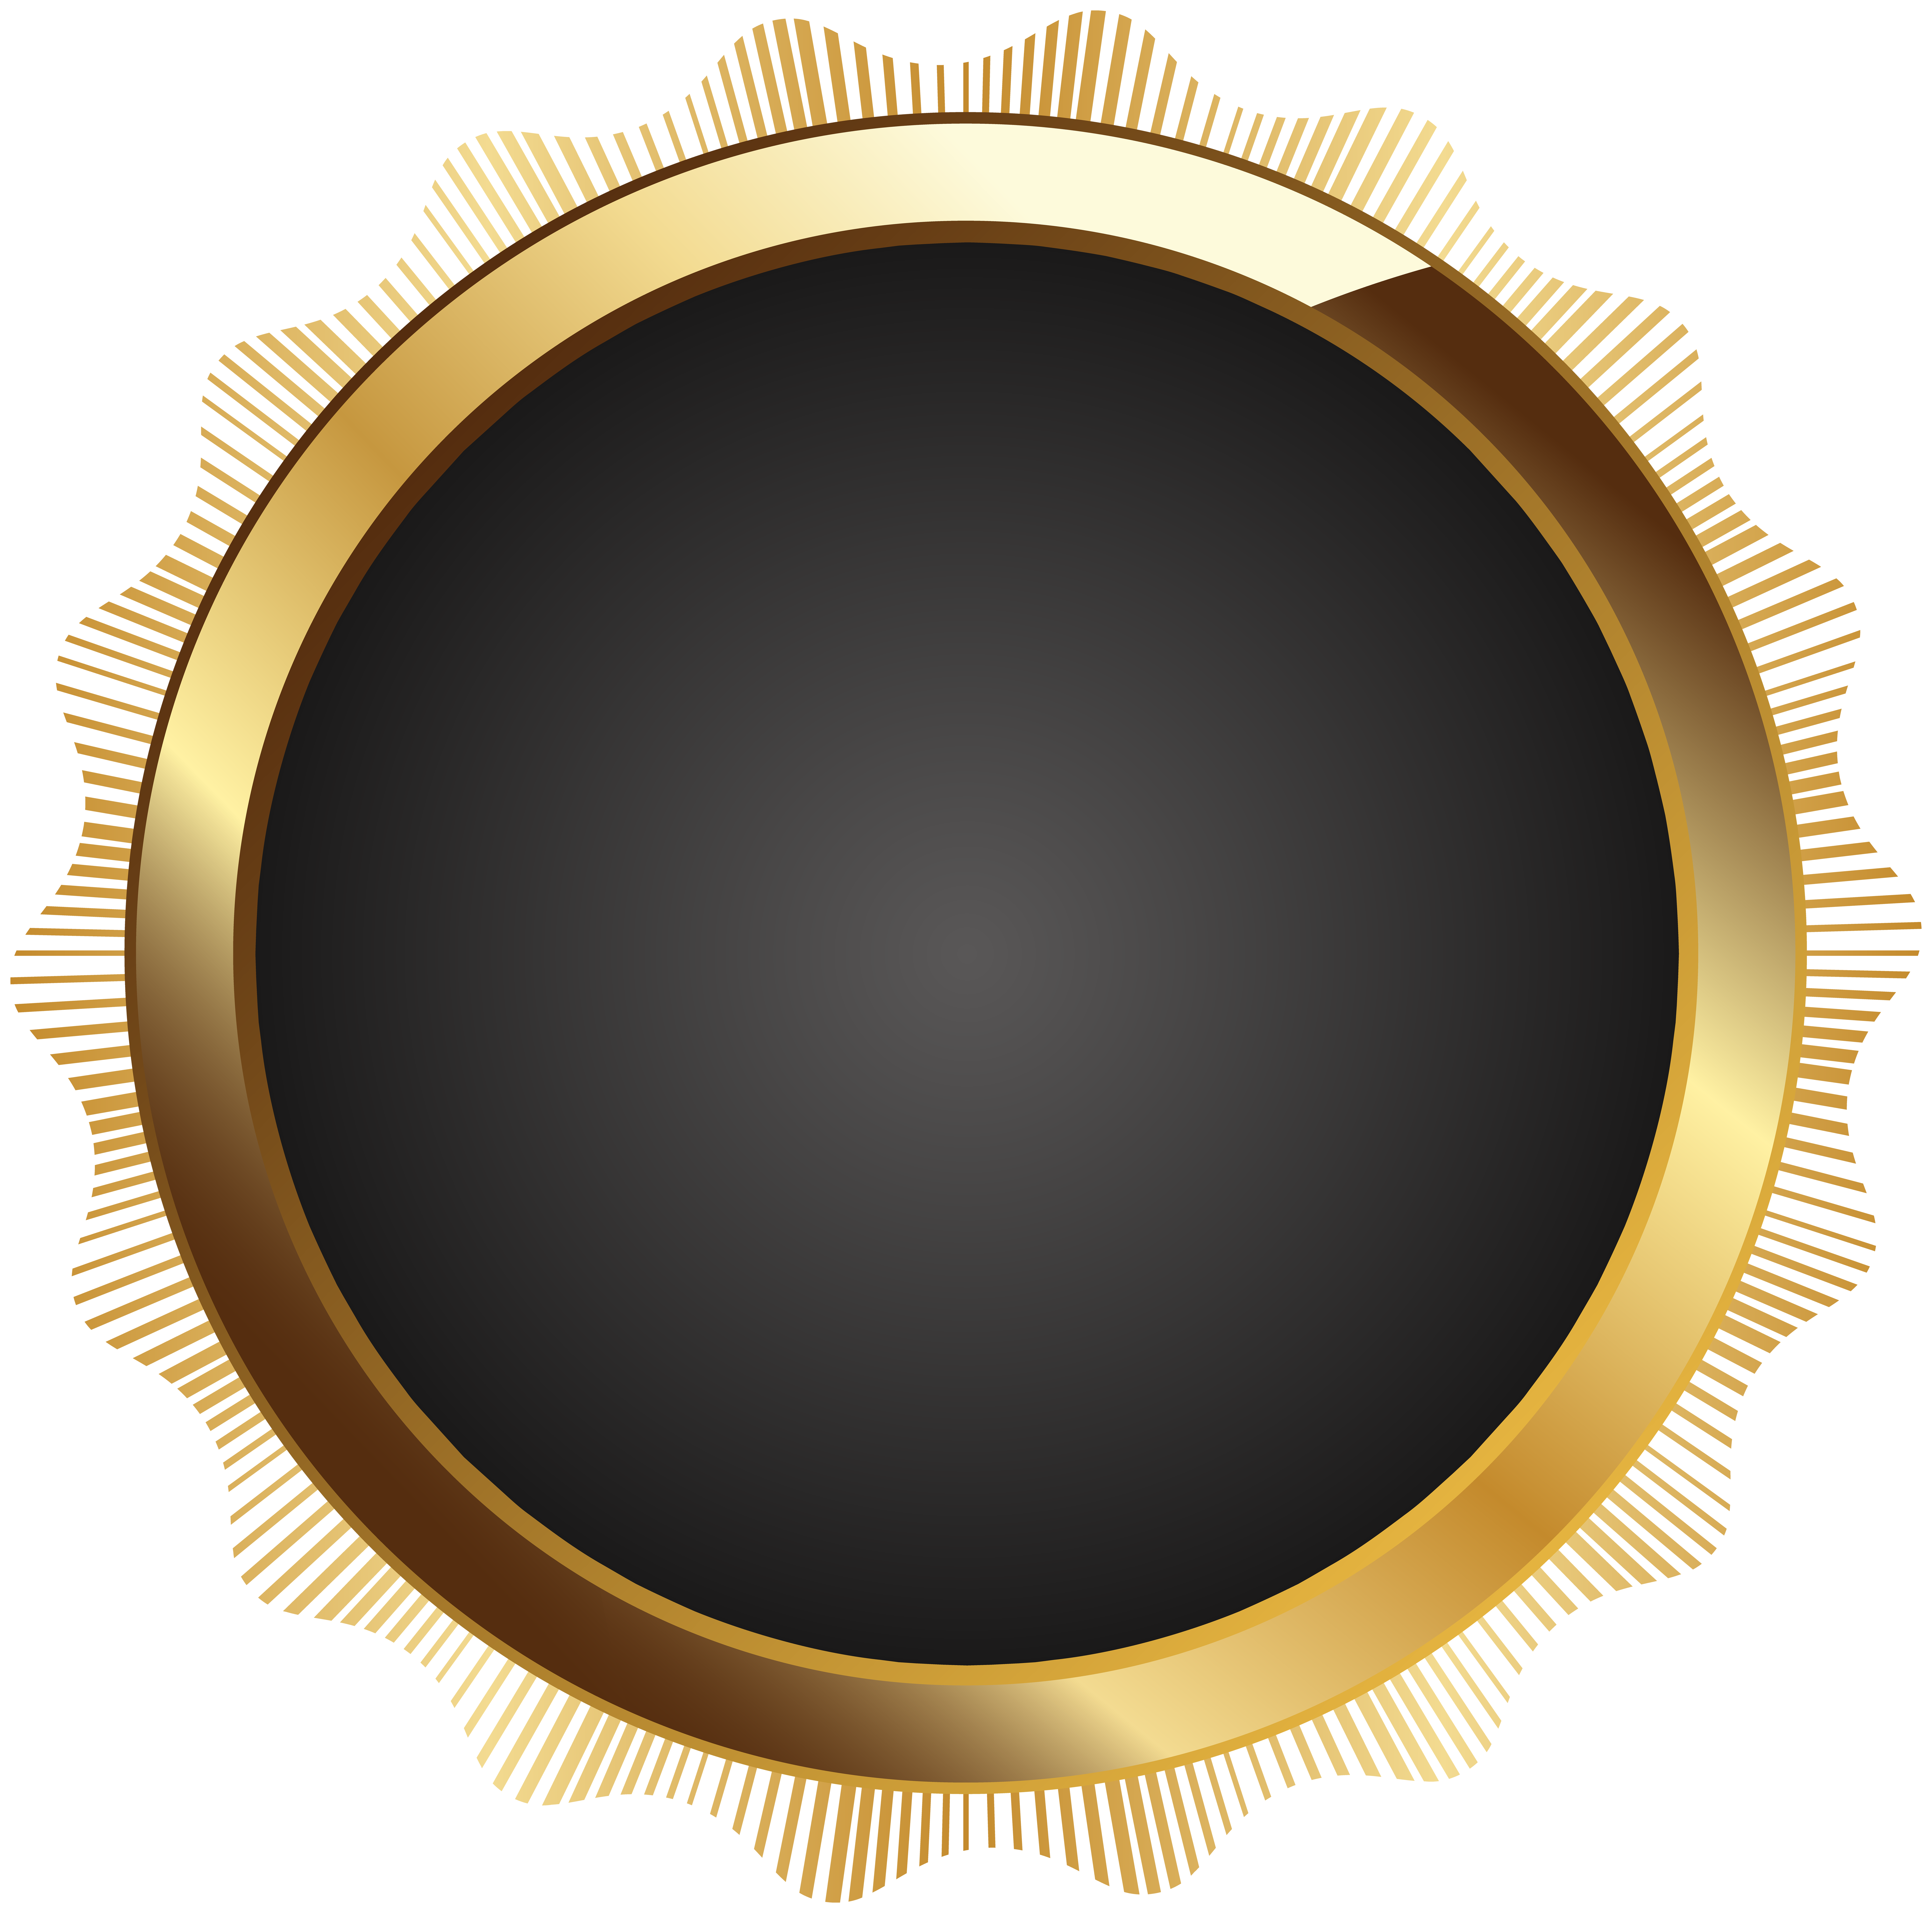 Seal Badge Black Png Transparent Clip Art Gallery Yopriceville High Quality Images And Transpar Poster Background Design Clip Art Iphone Wallpaper Pattern